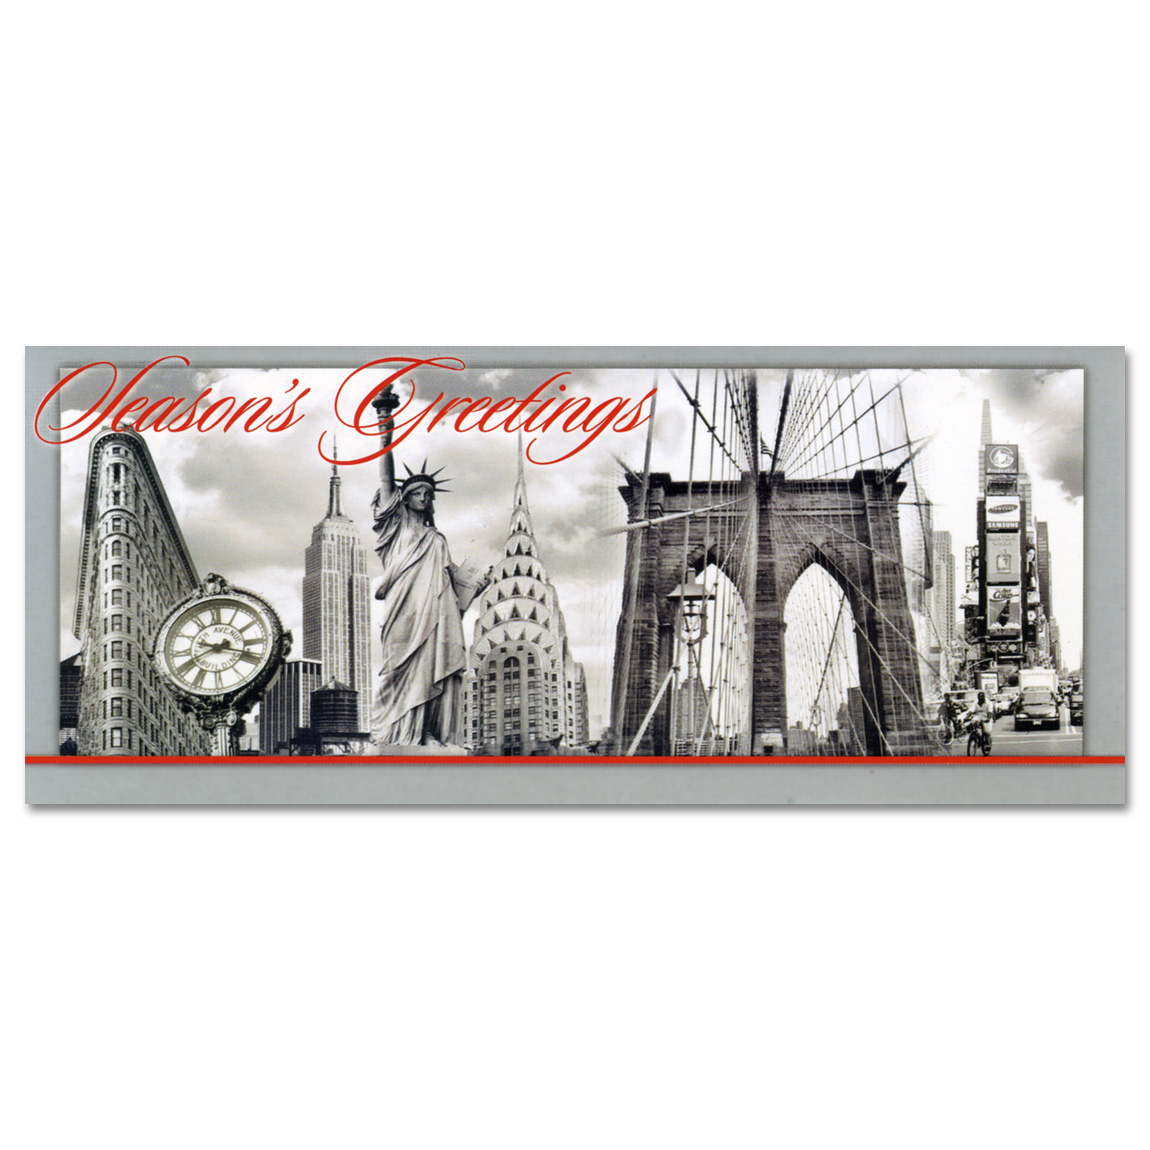 NYC Landmarks Collage – Christmas Money Cards Holders Set of 8